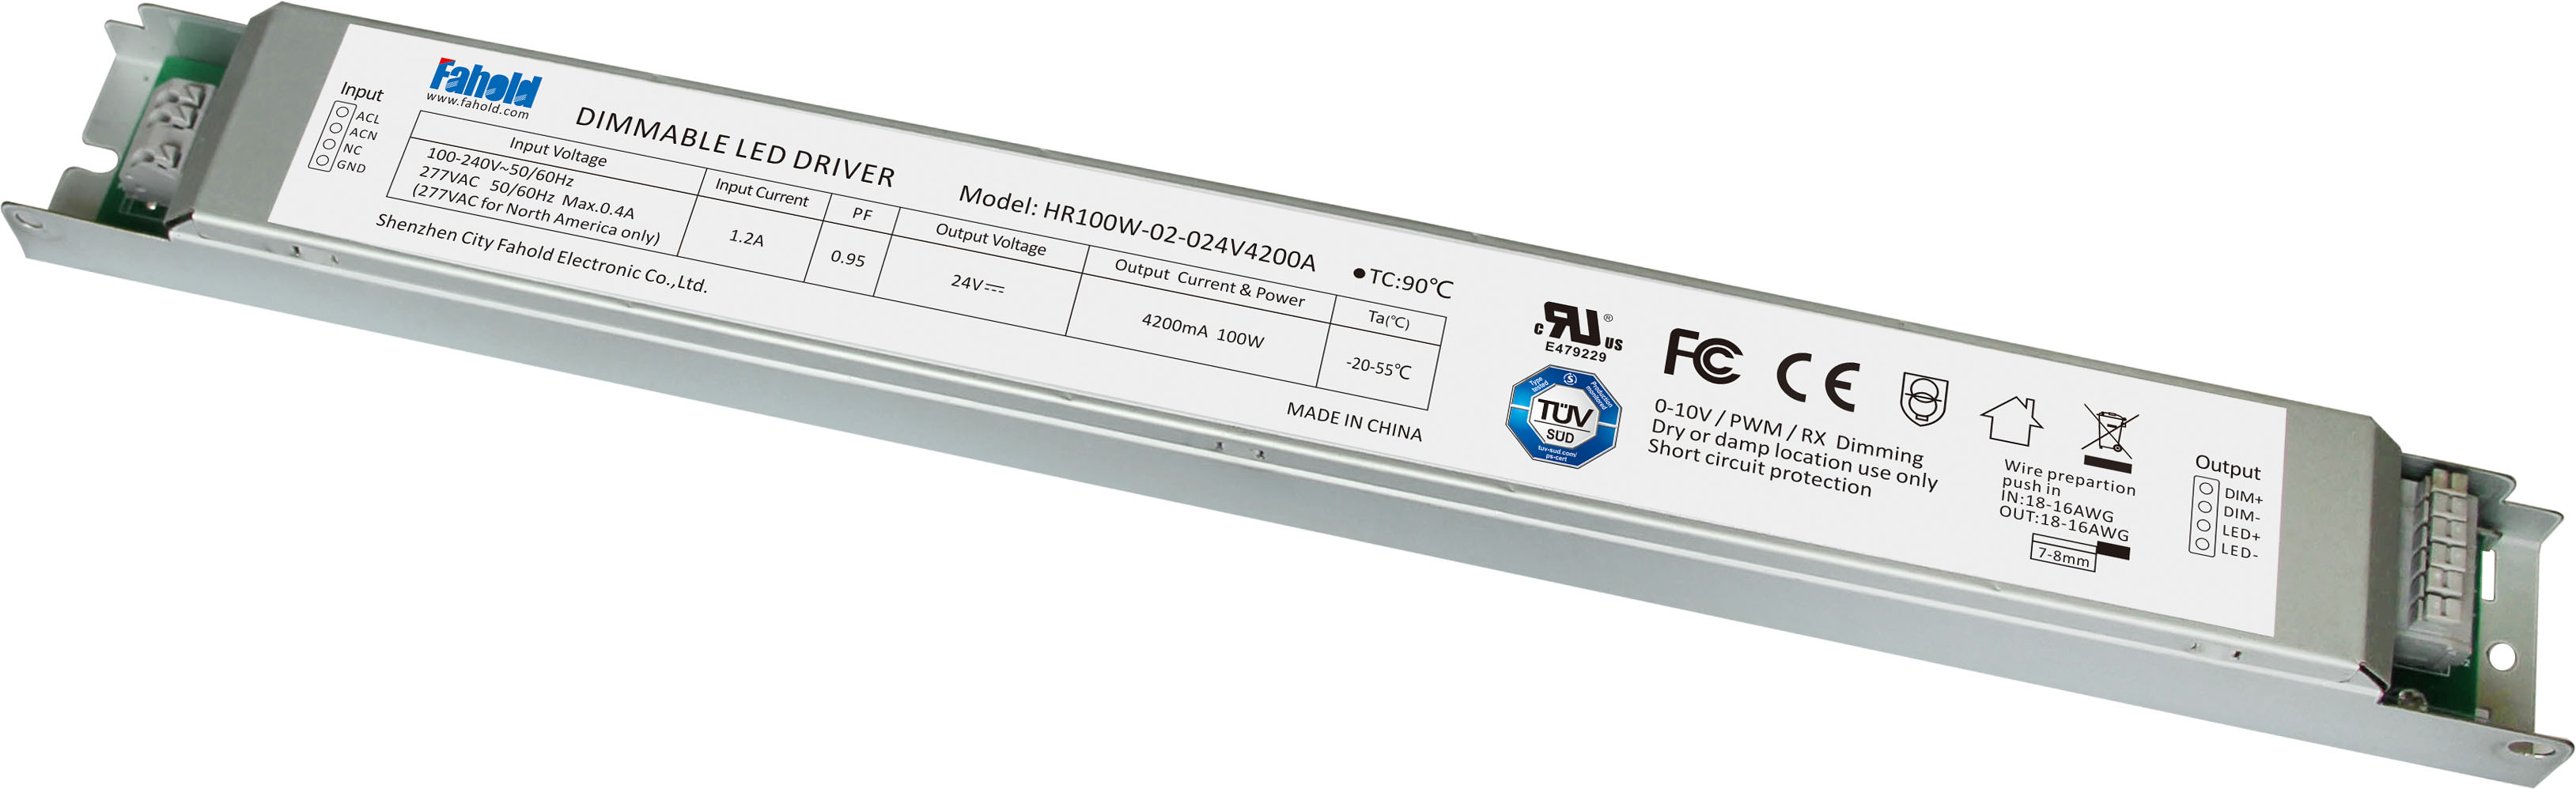 Constant Voltage 100w Led Drivers For Linear Lights Ul Tuv Emergency Ballast With Low Dimmer Wiring Certified